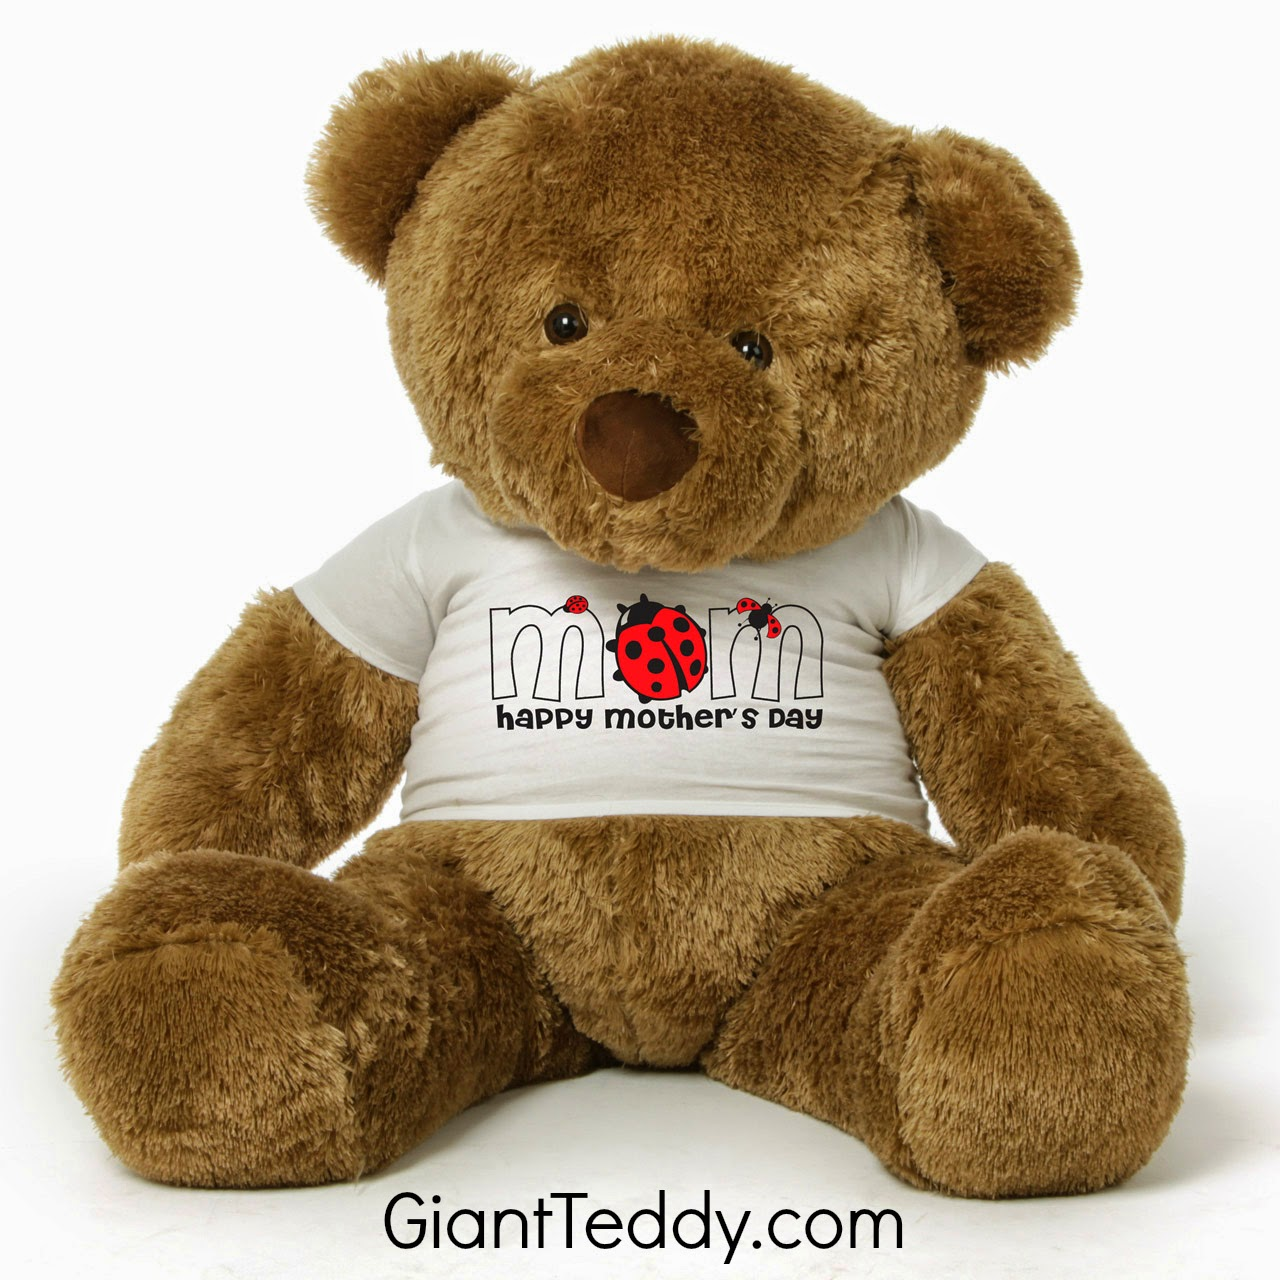 Giant Teddy bears for Mother's Day